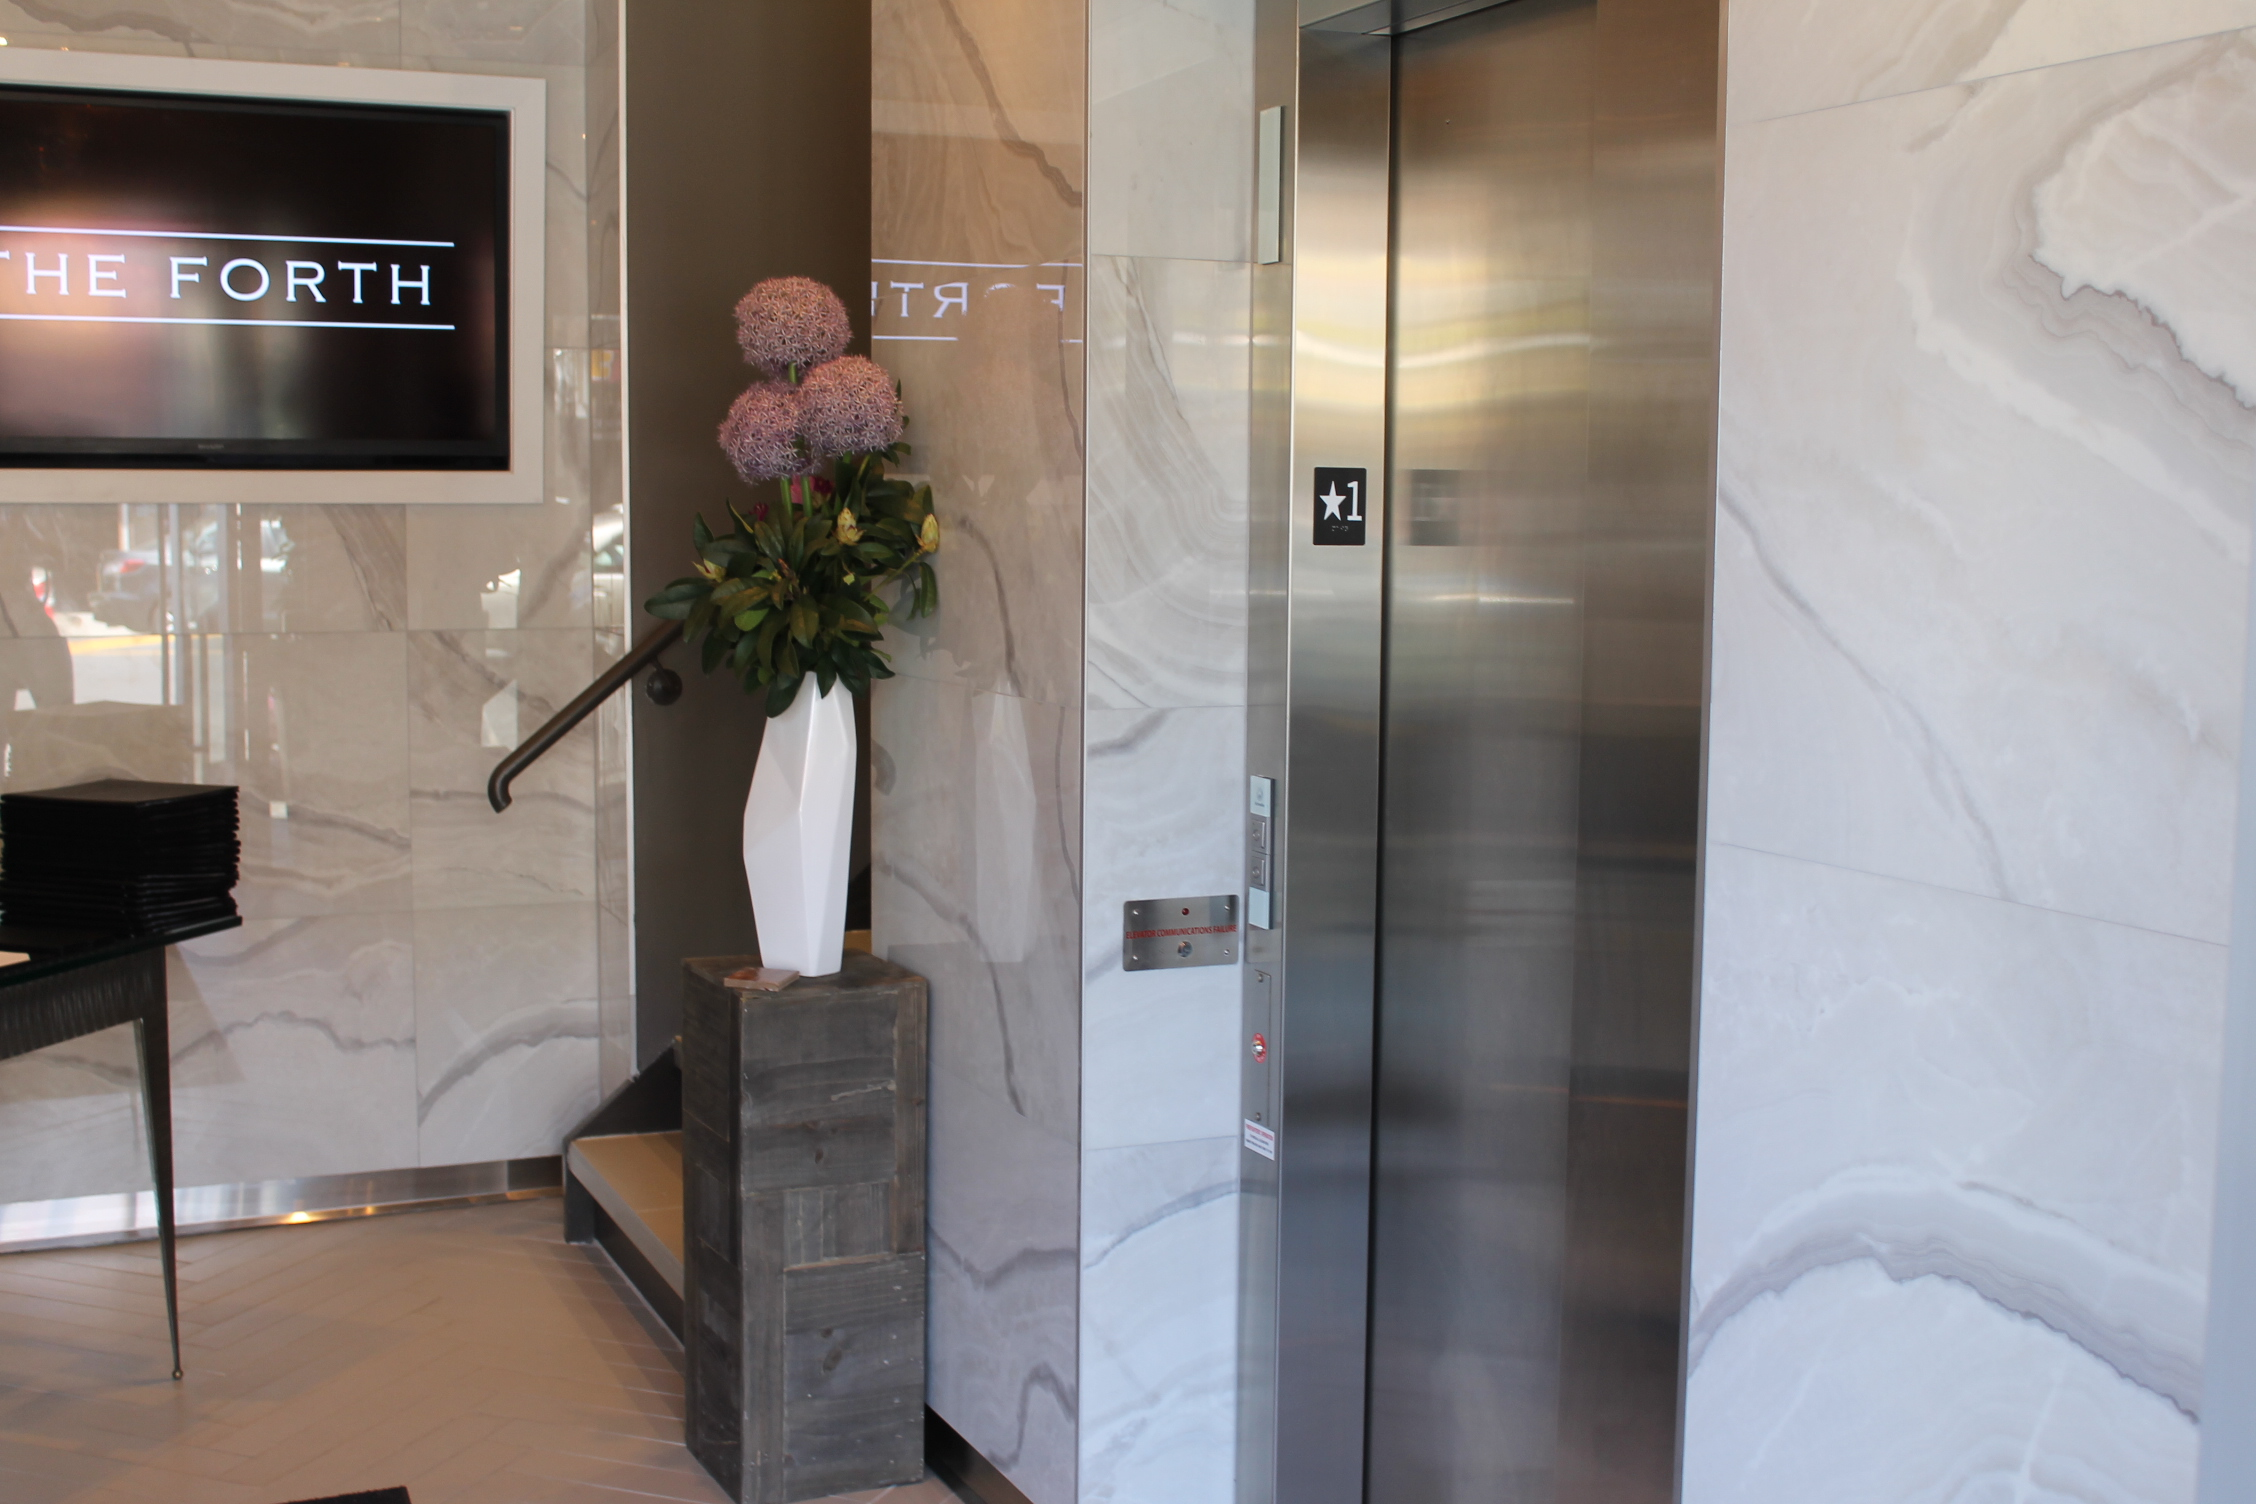 Picture of the accessible elevator.